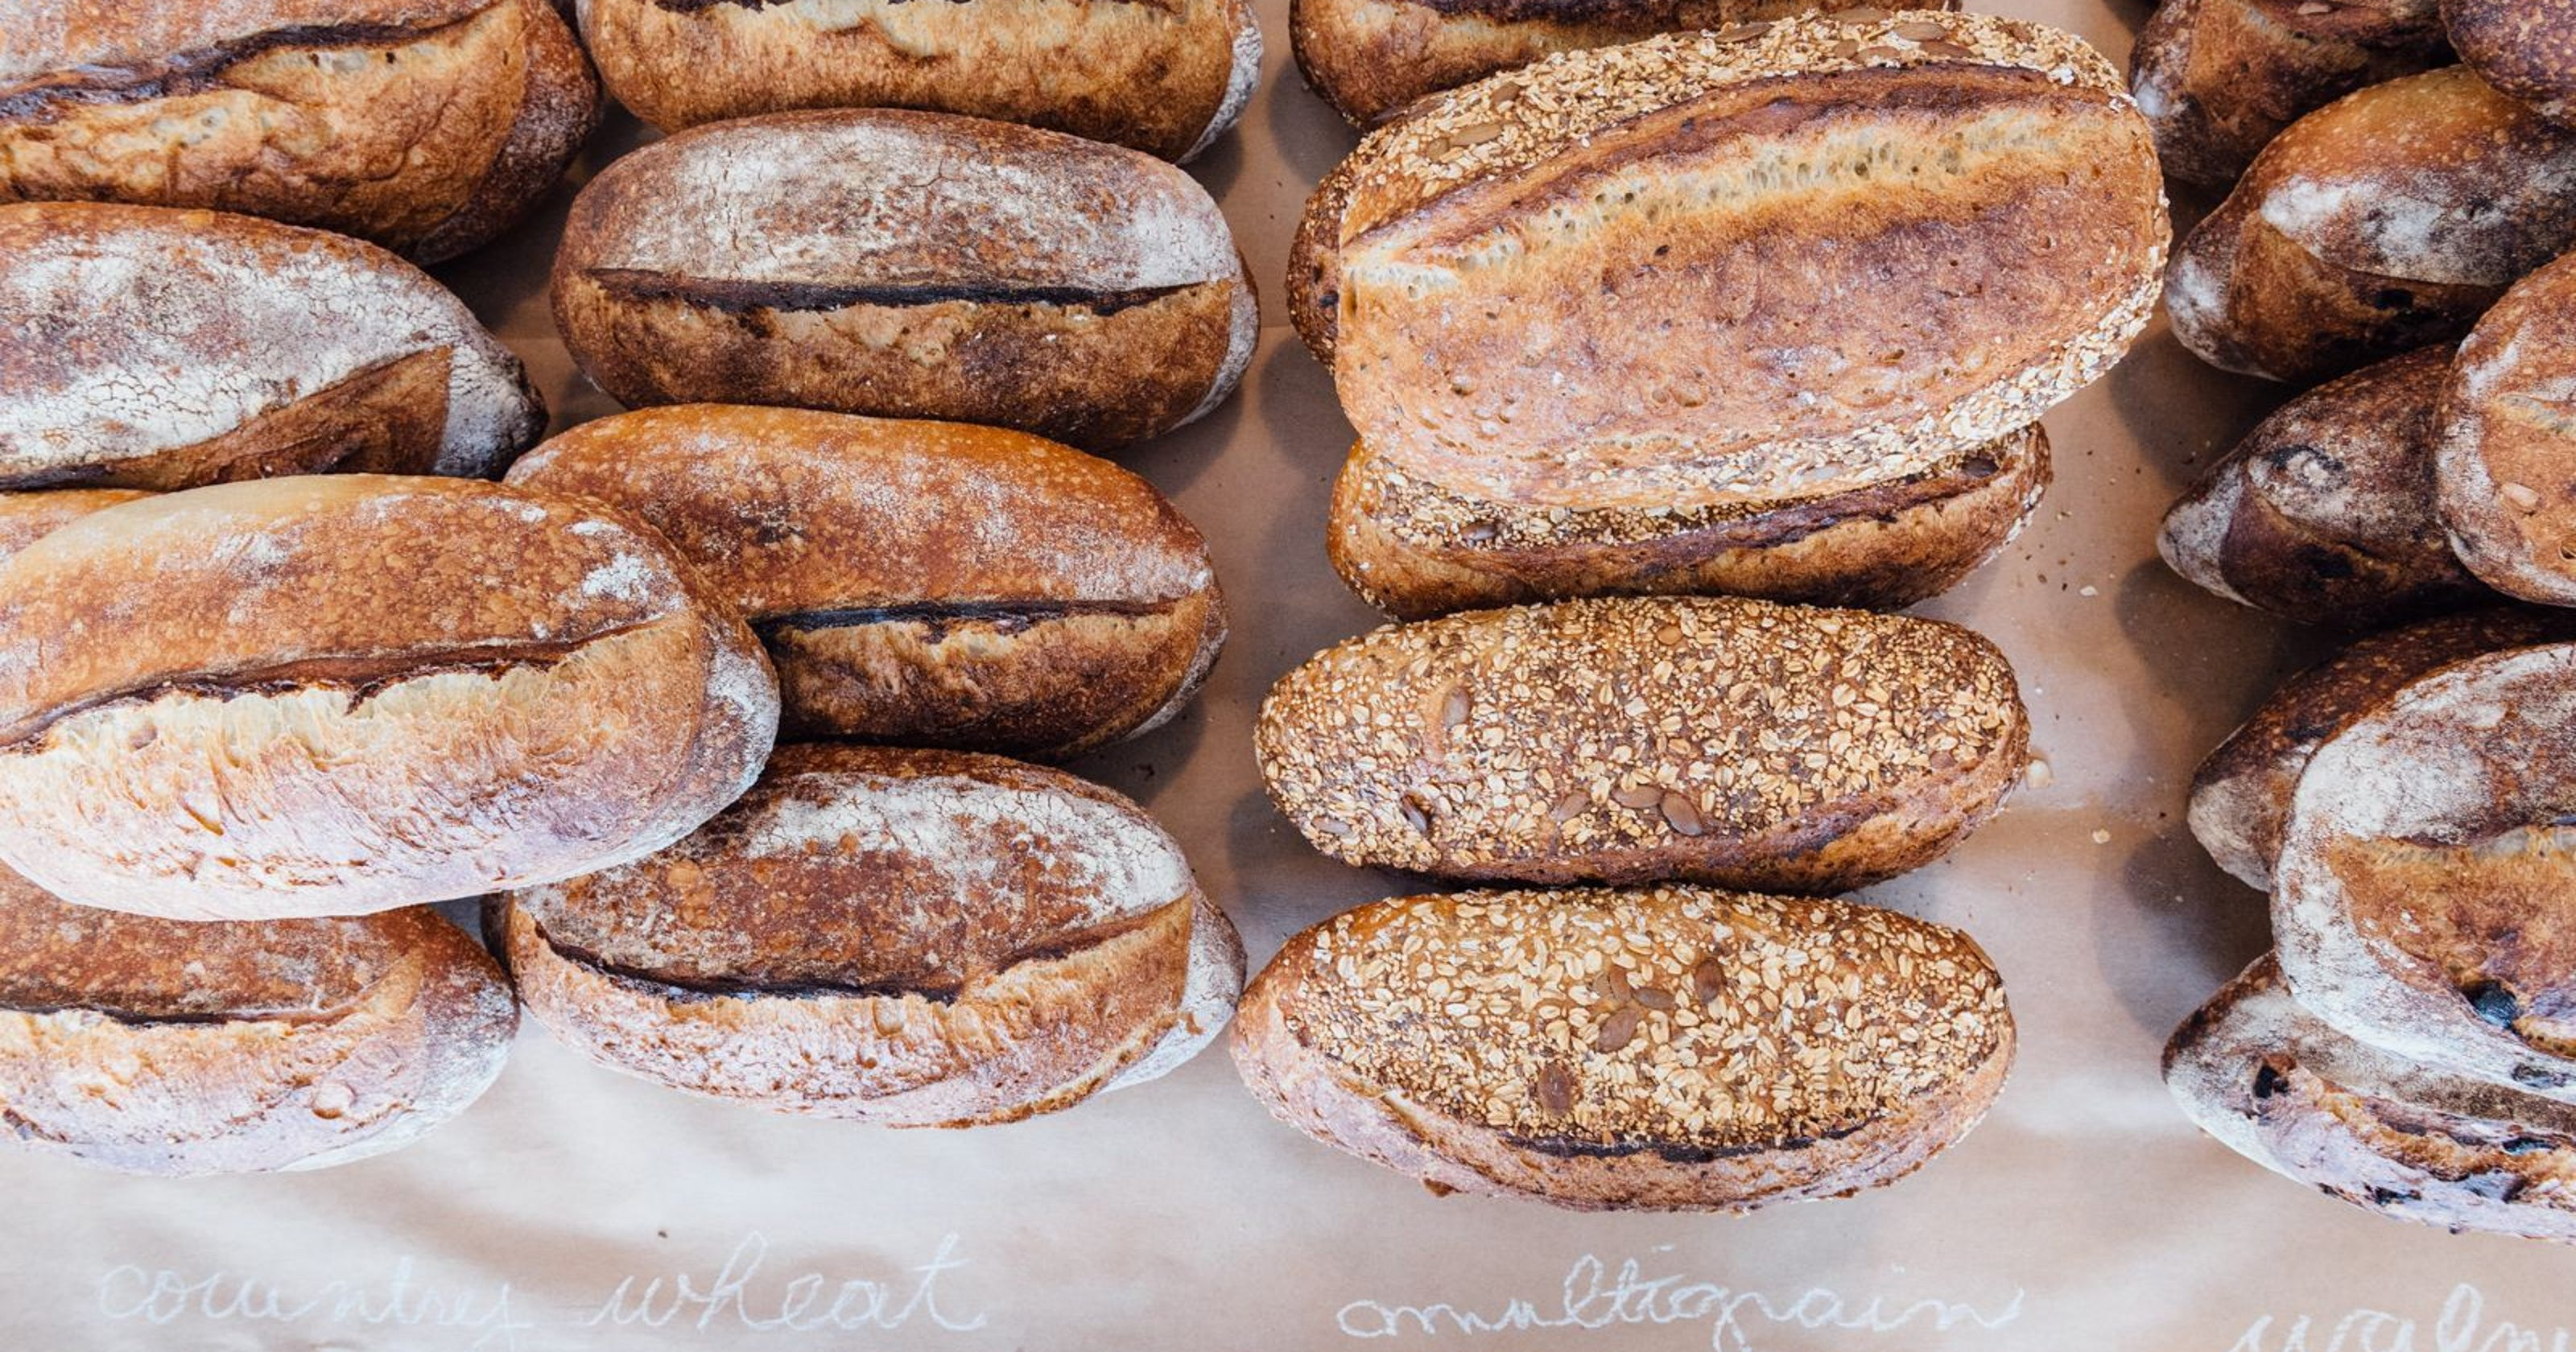 The Best Bread Bakeries In South